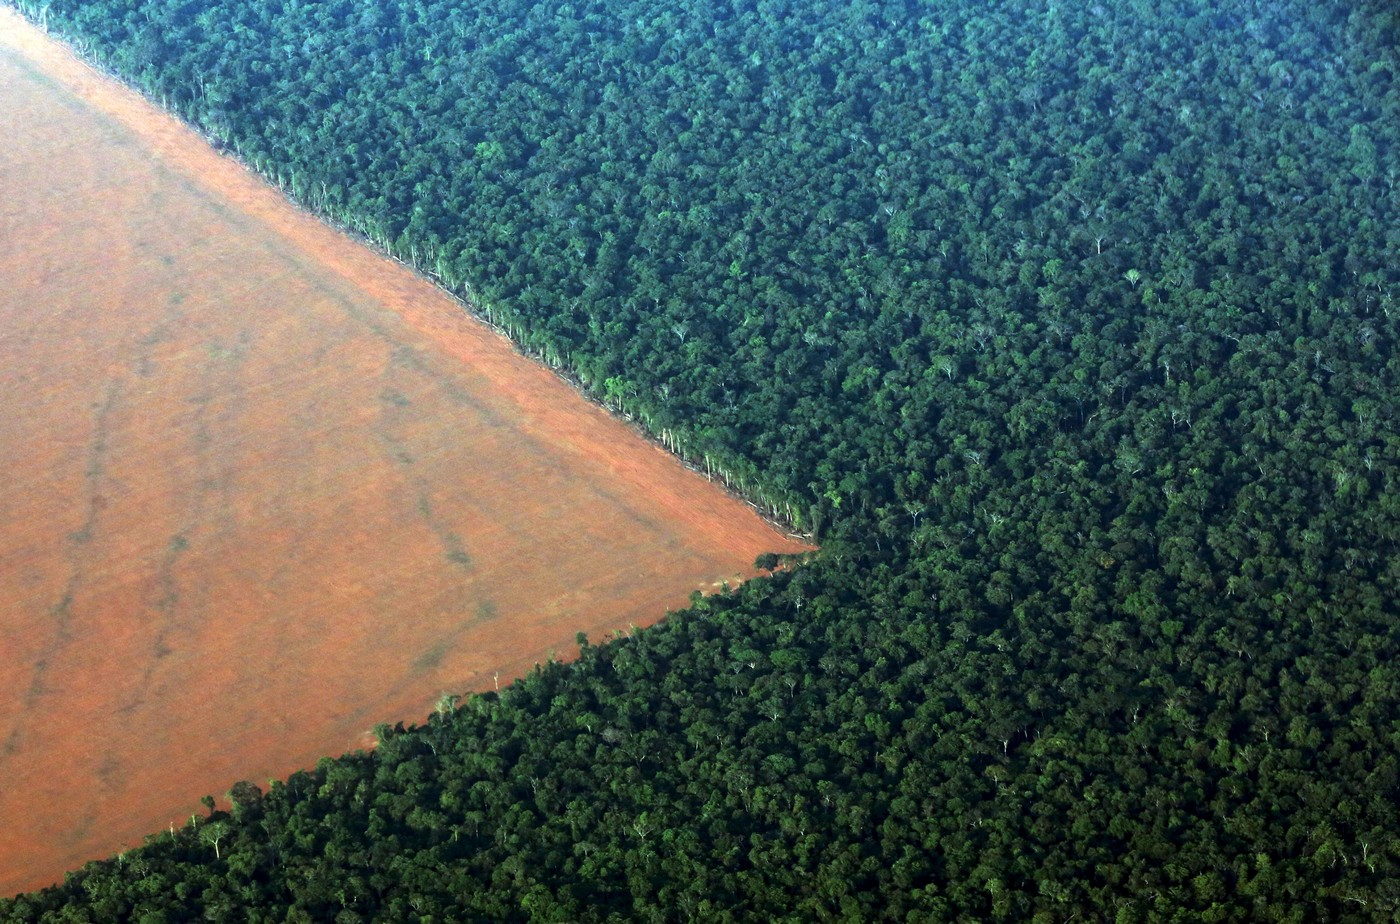 deforestation in the amazon rainforest Direct drivers of deforestation in amazon countries cattle ranching cattle ranching is the leading cause of deforestation in the amazon rainforest in brazil, this has been the case since at least the 1970s: government figures attributed 38 percent of deforestation from 1966-1975 to large-scale cattle ranching.